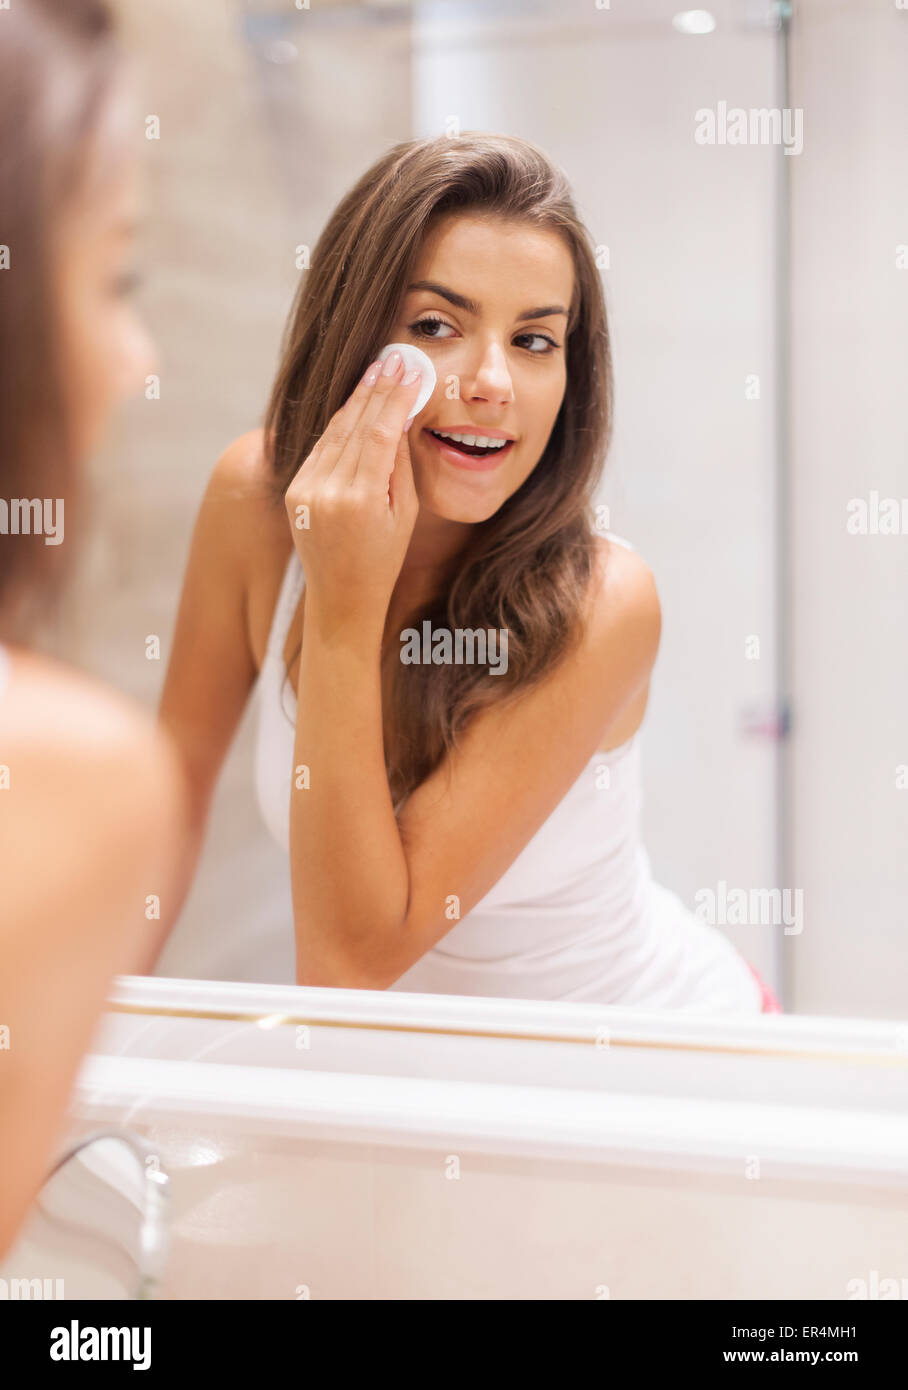 Woman removing makeup from her face. Debica, Poland - Stock Image